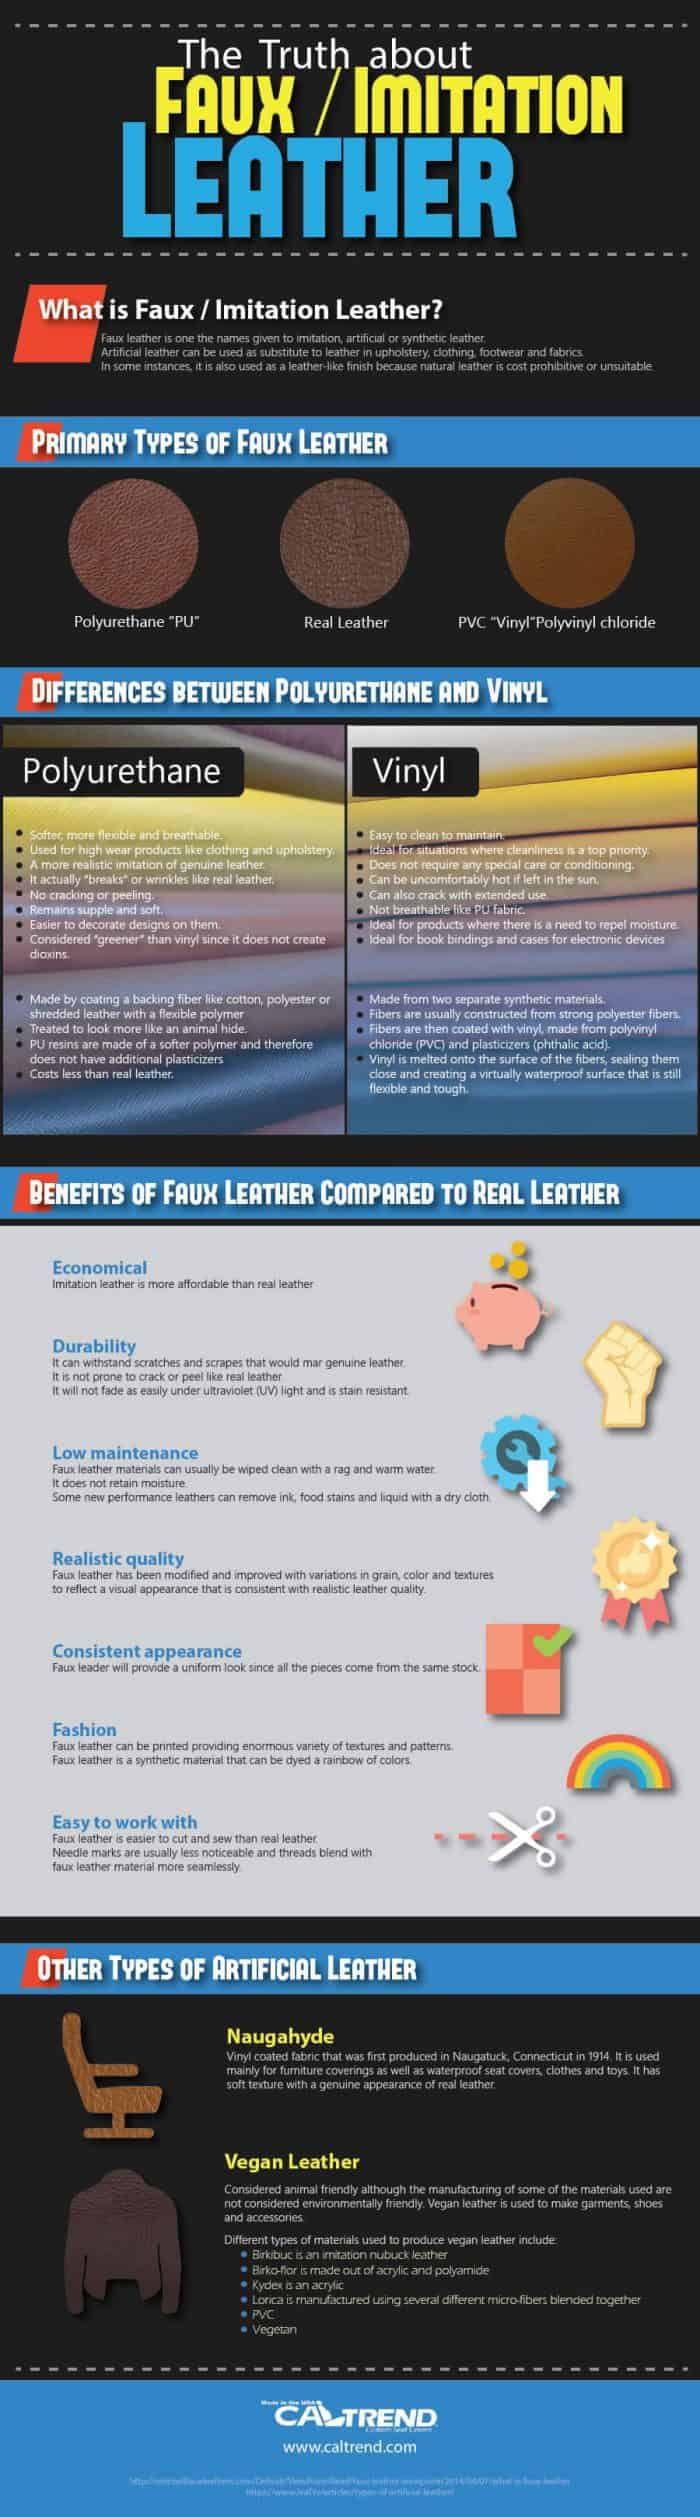 infographic describes the benefits of faux leather